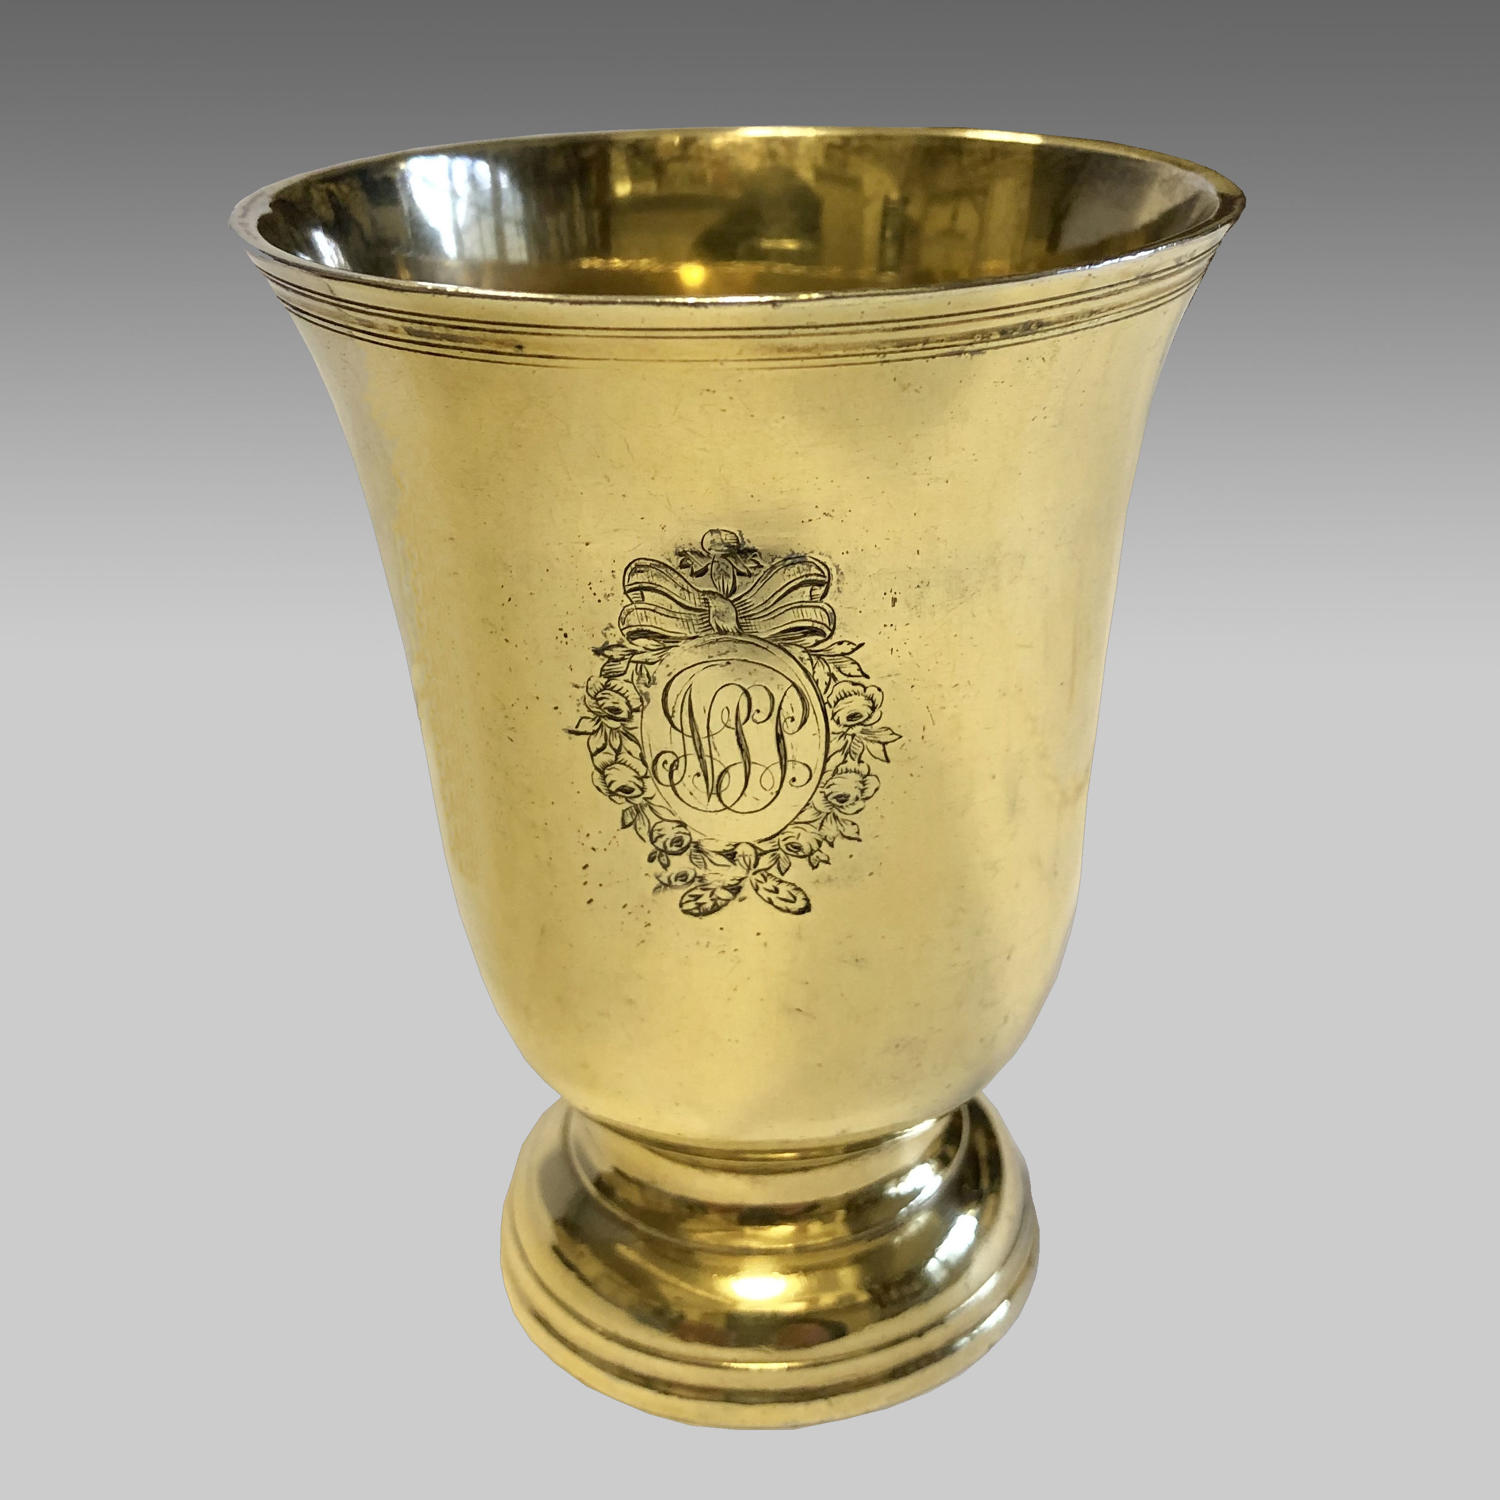 Fine 18th century antique French silver gilt beaker